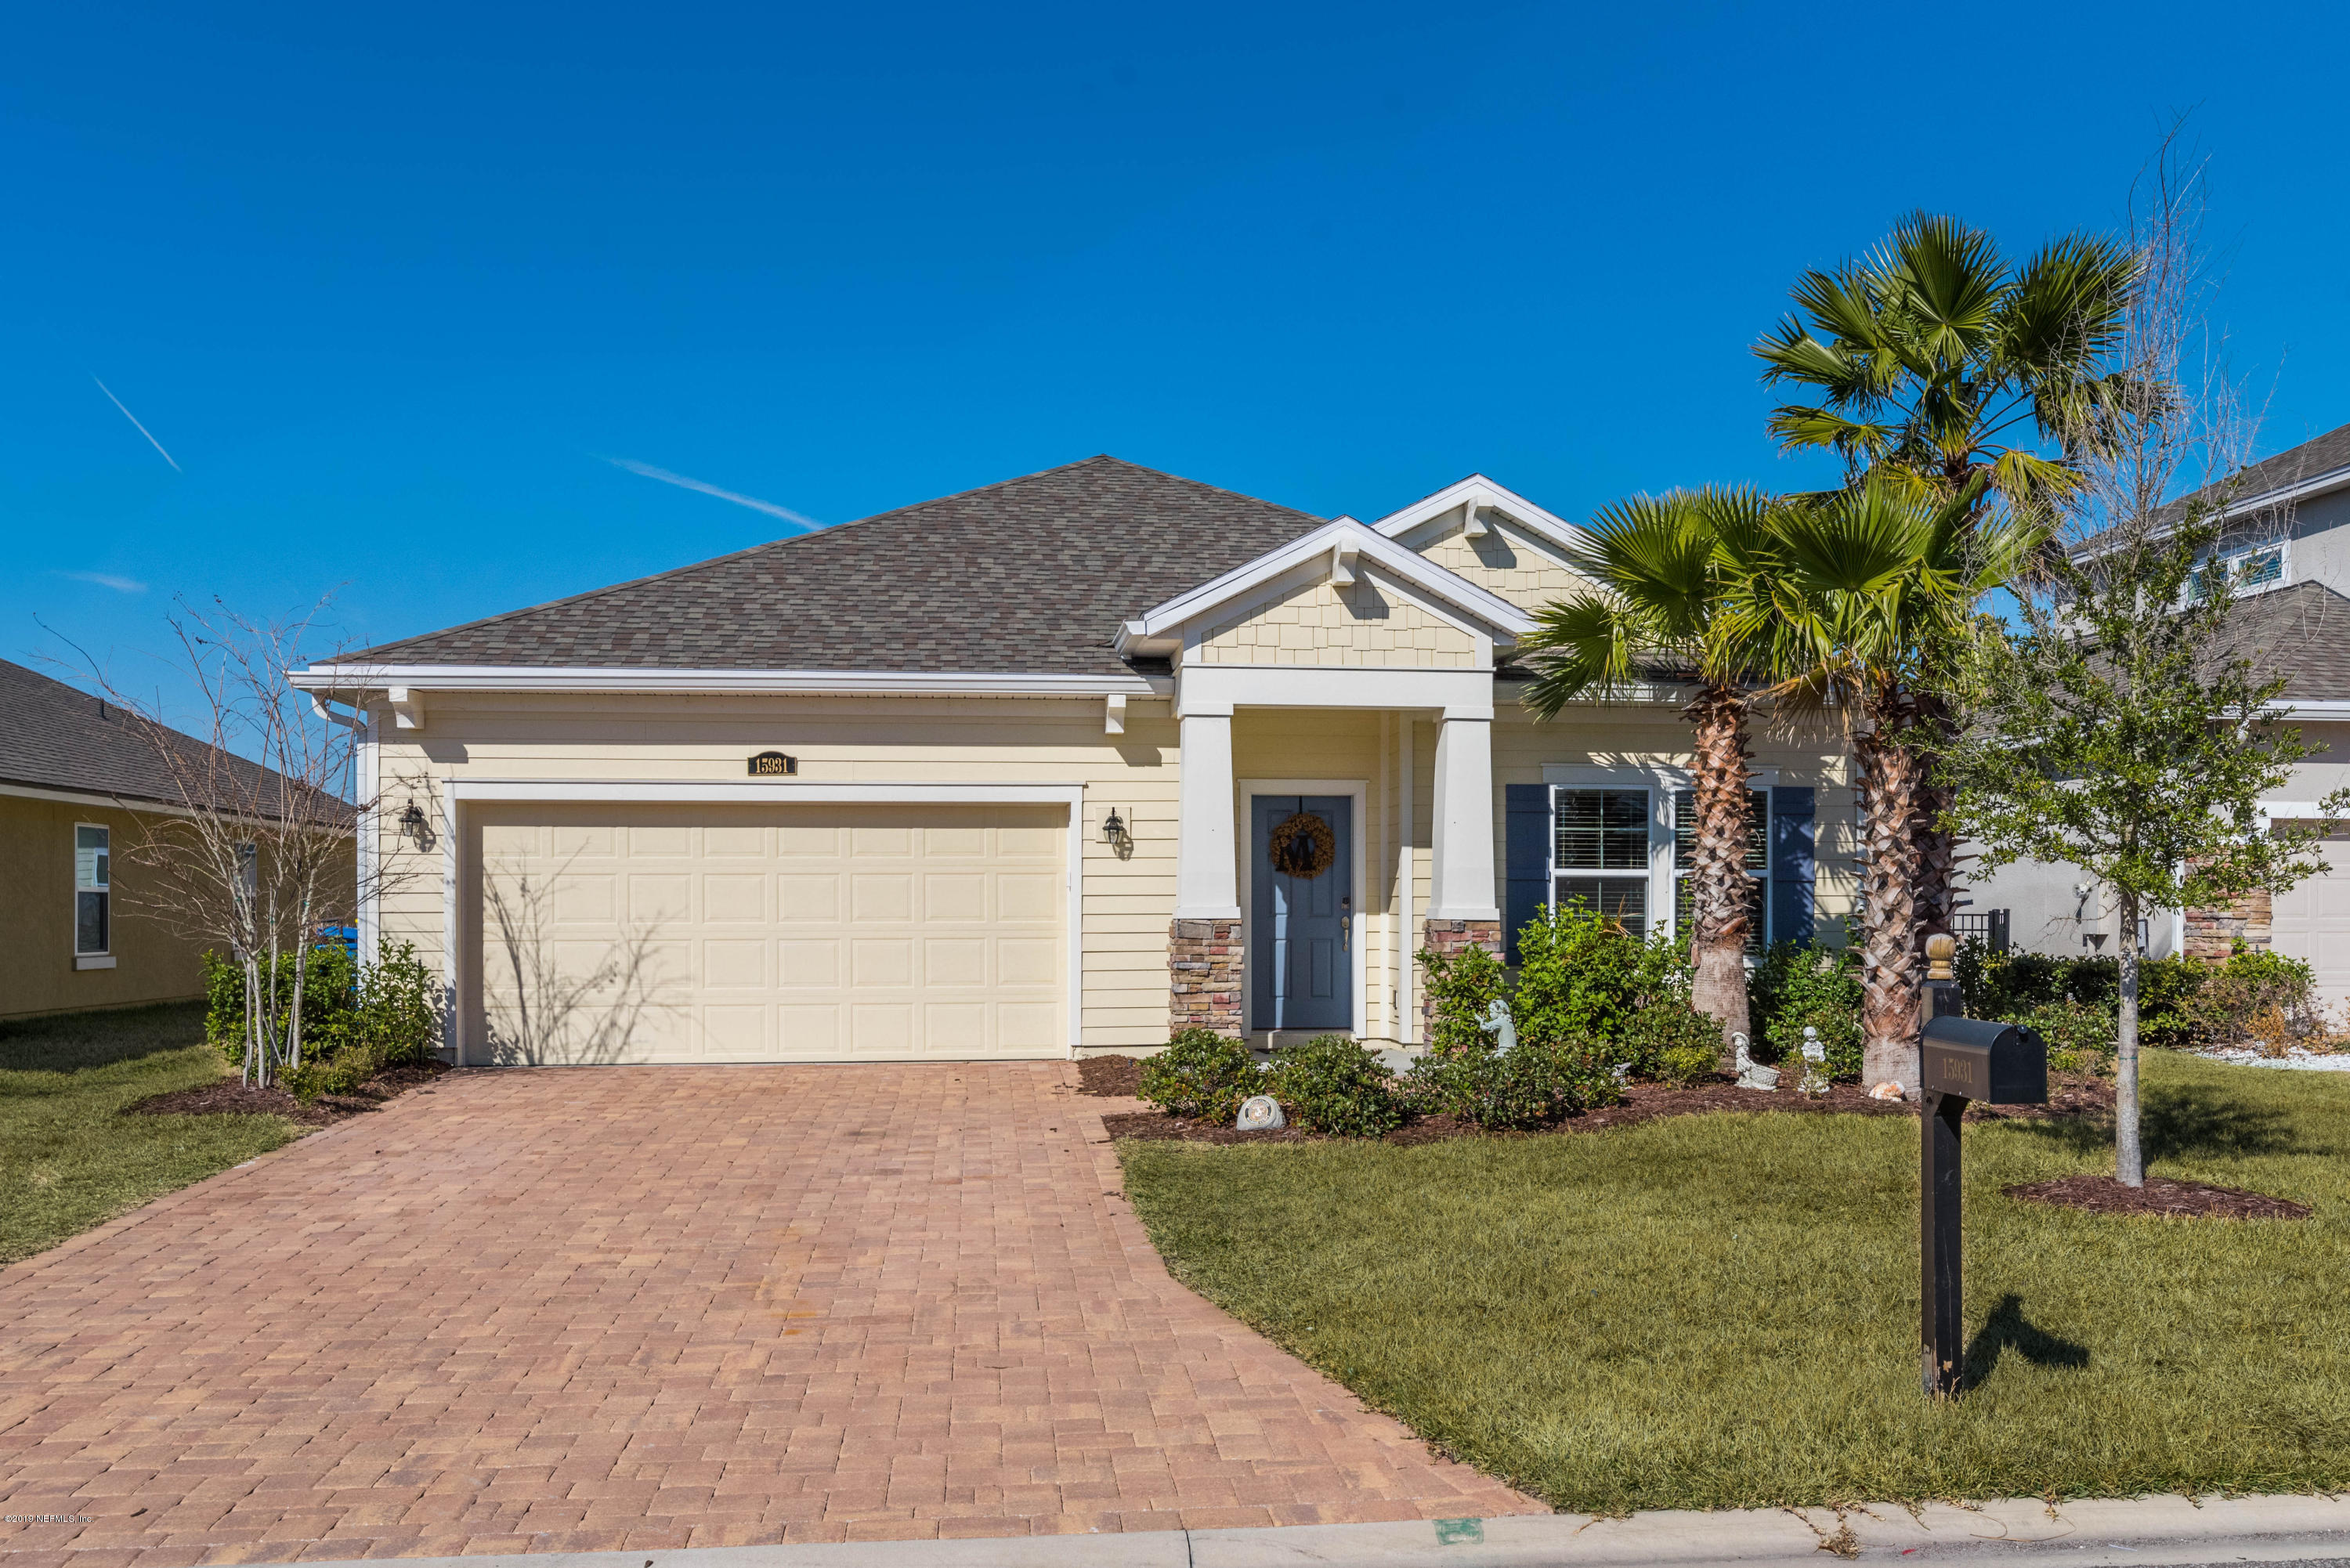 15931 TISONS BLUFF, JACKSONVILLE, FLORIDA 32218, 4 Bedrooms Bedrooms, ,2 BathroomsBathrooms,Residential - single family,For sale,TISONS BLUFF,974953